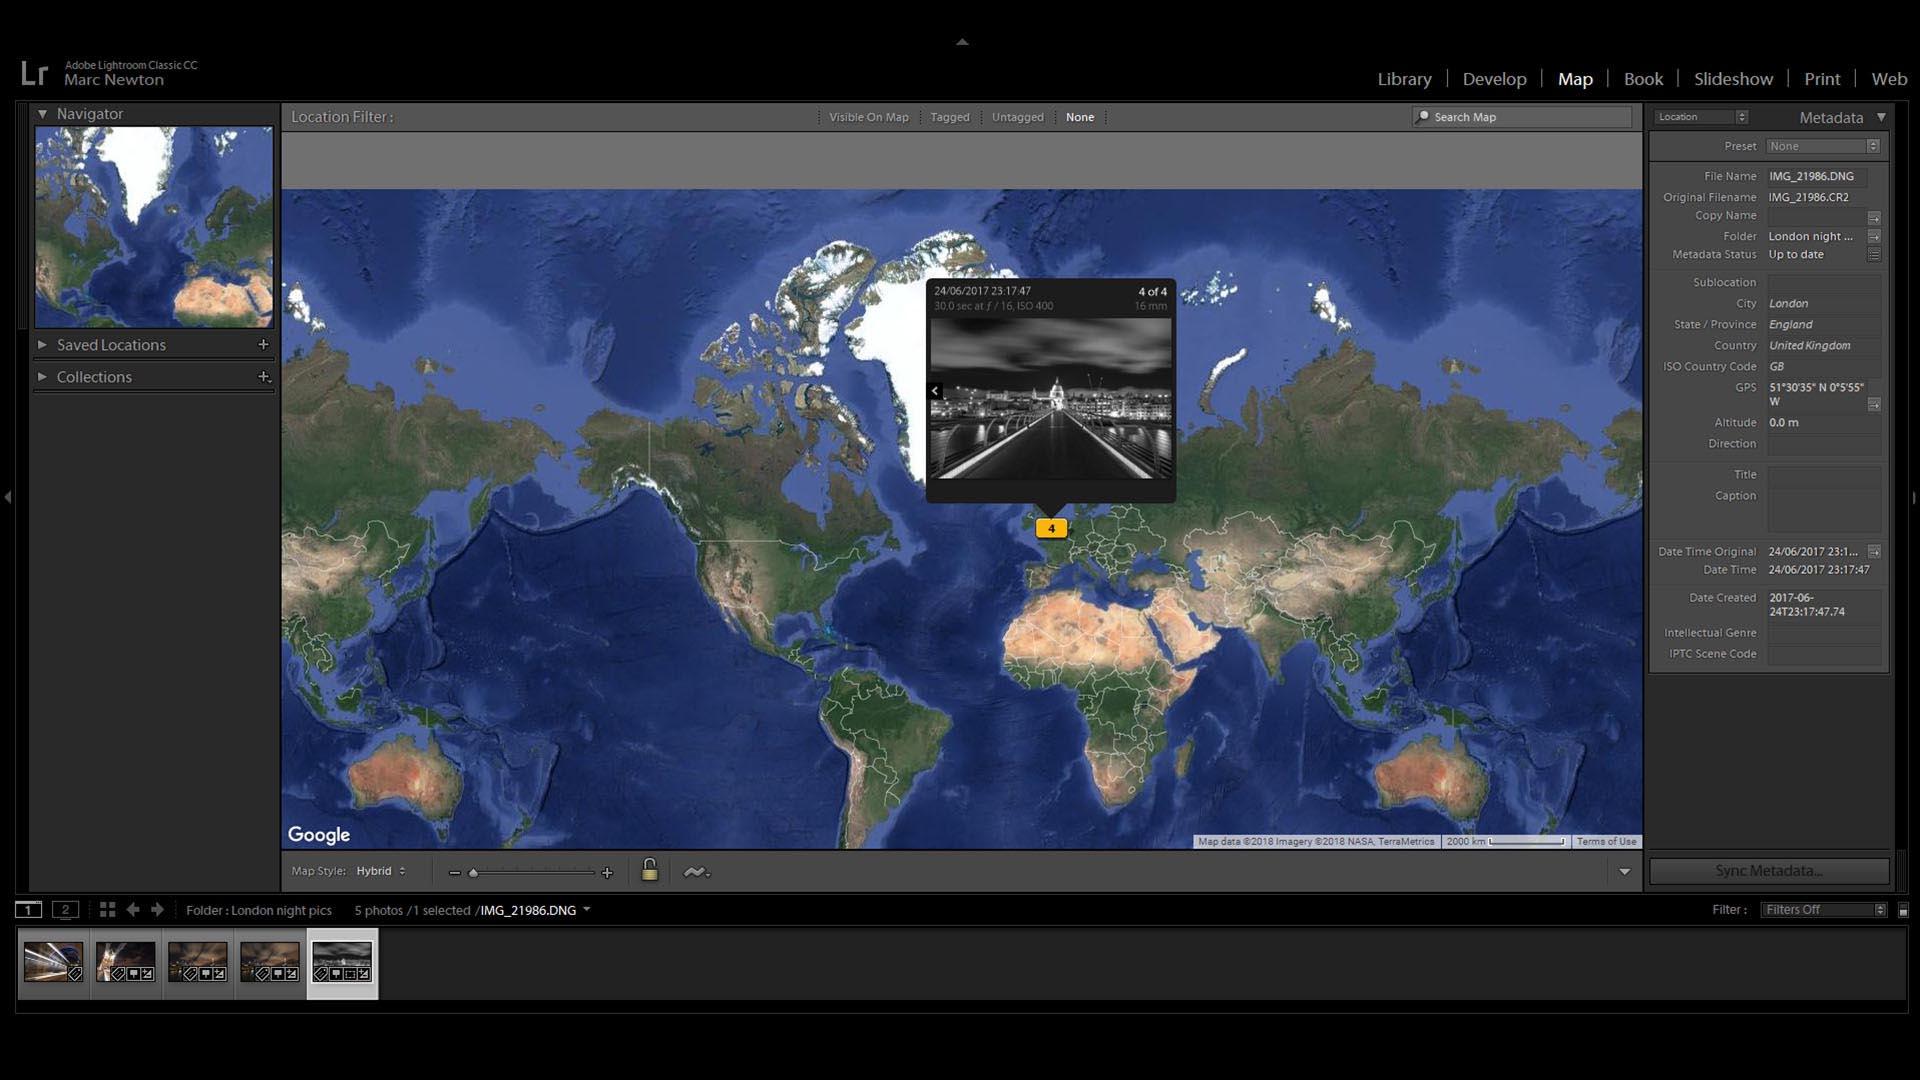 Lesson 15 – Map Module - This is a great option to add GPS tagging to your photos. I'll teach you, in depth, how to use the map module to add location information manually and on import.